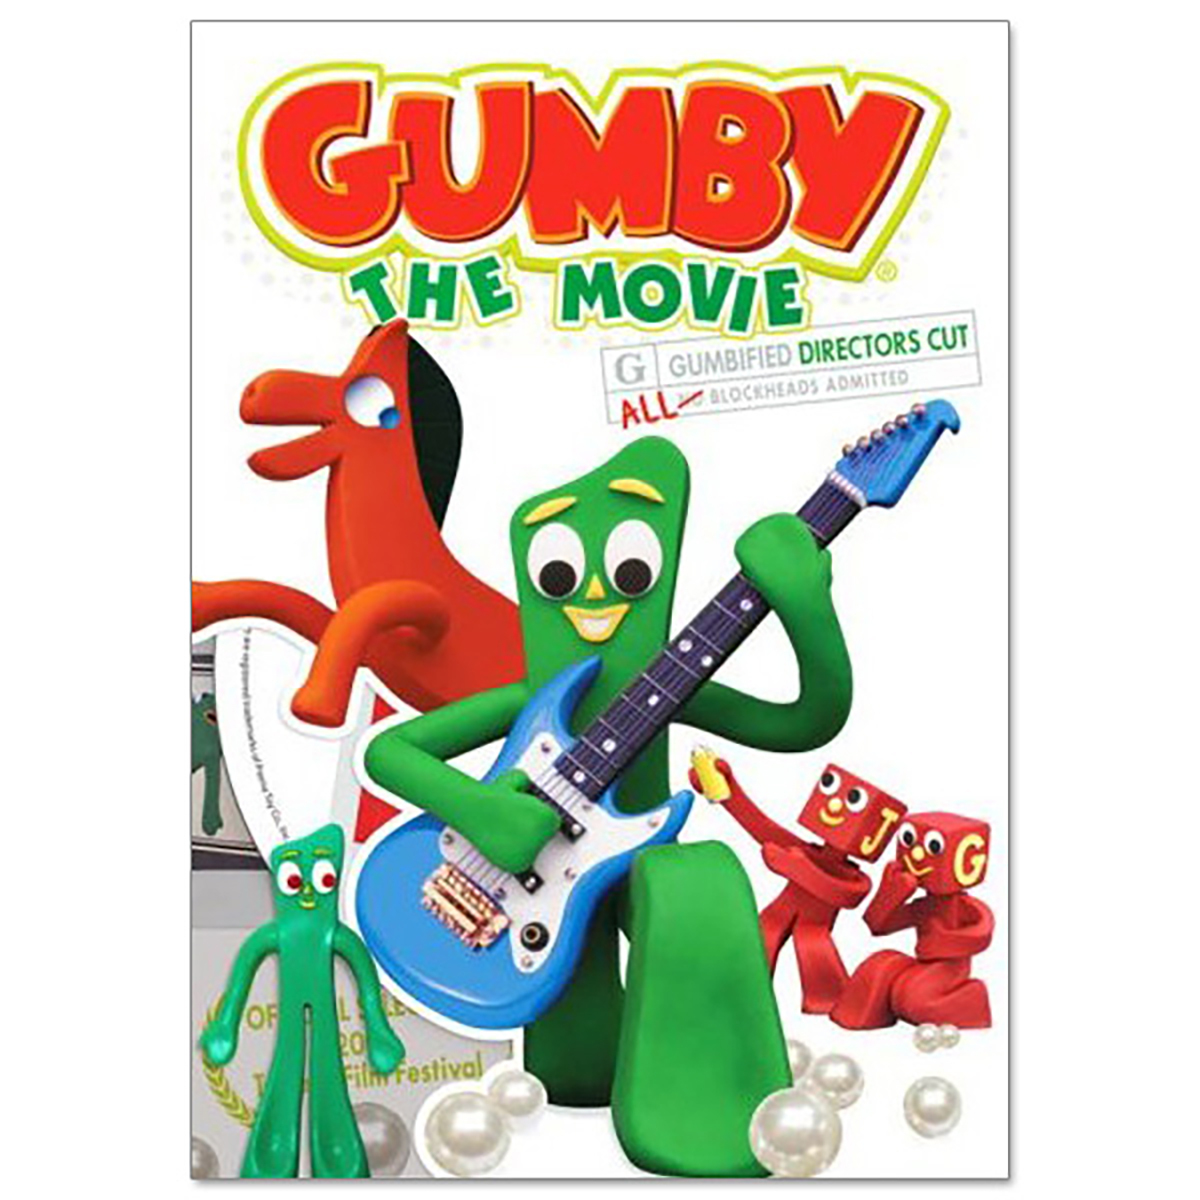 Gumby: The Movie DVD